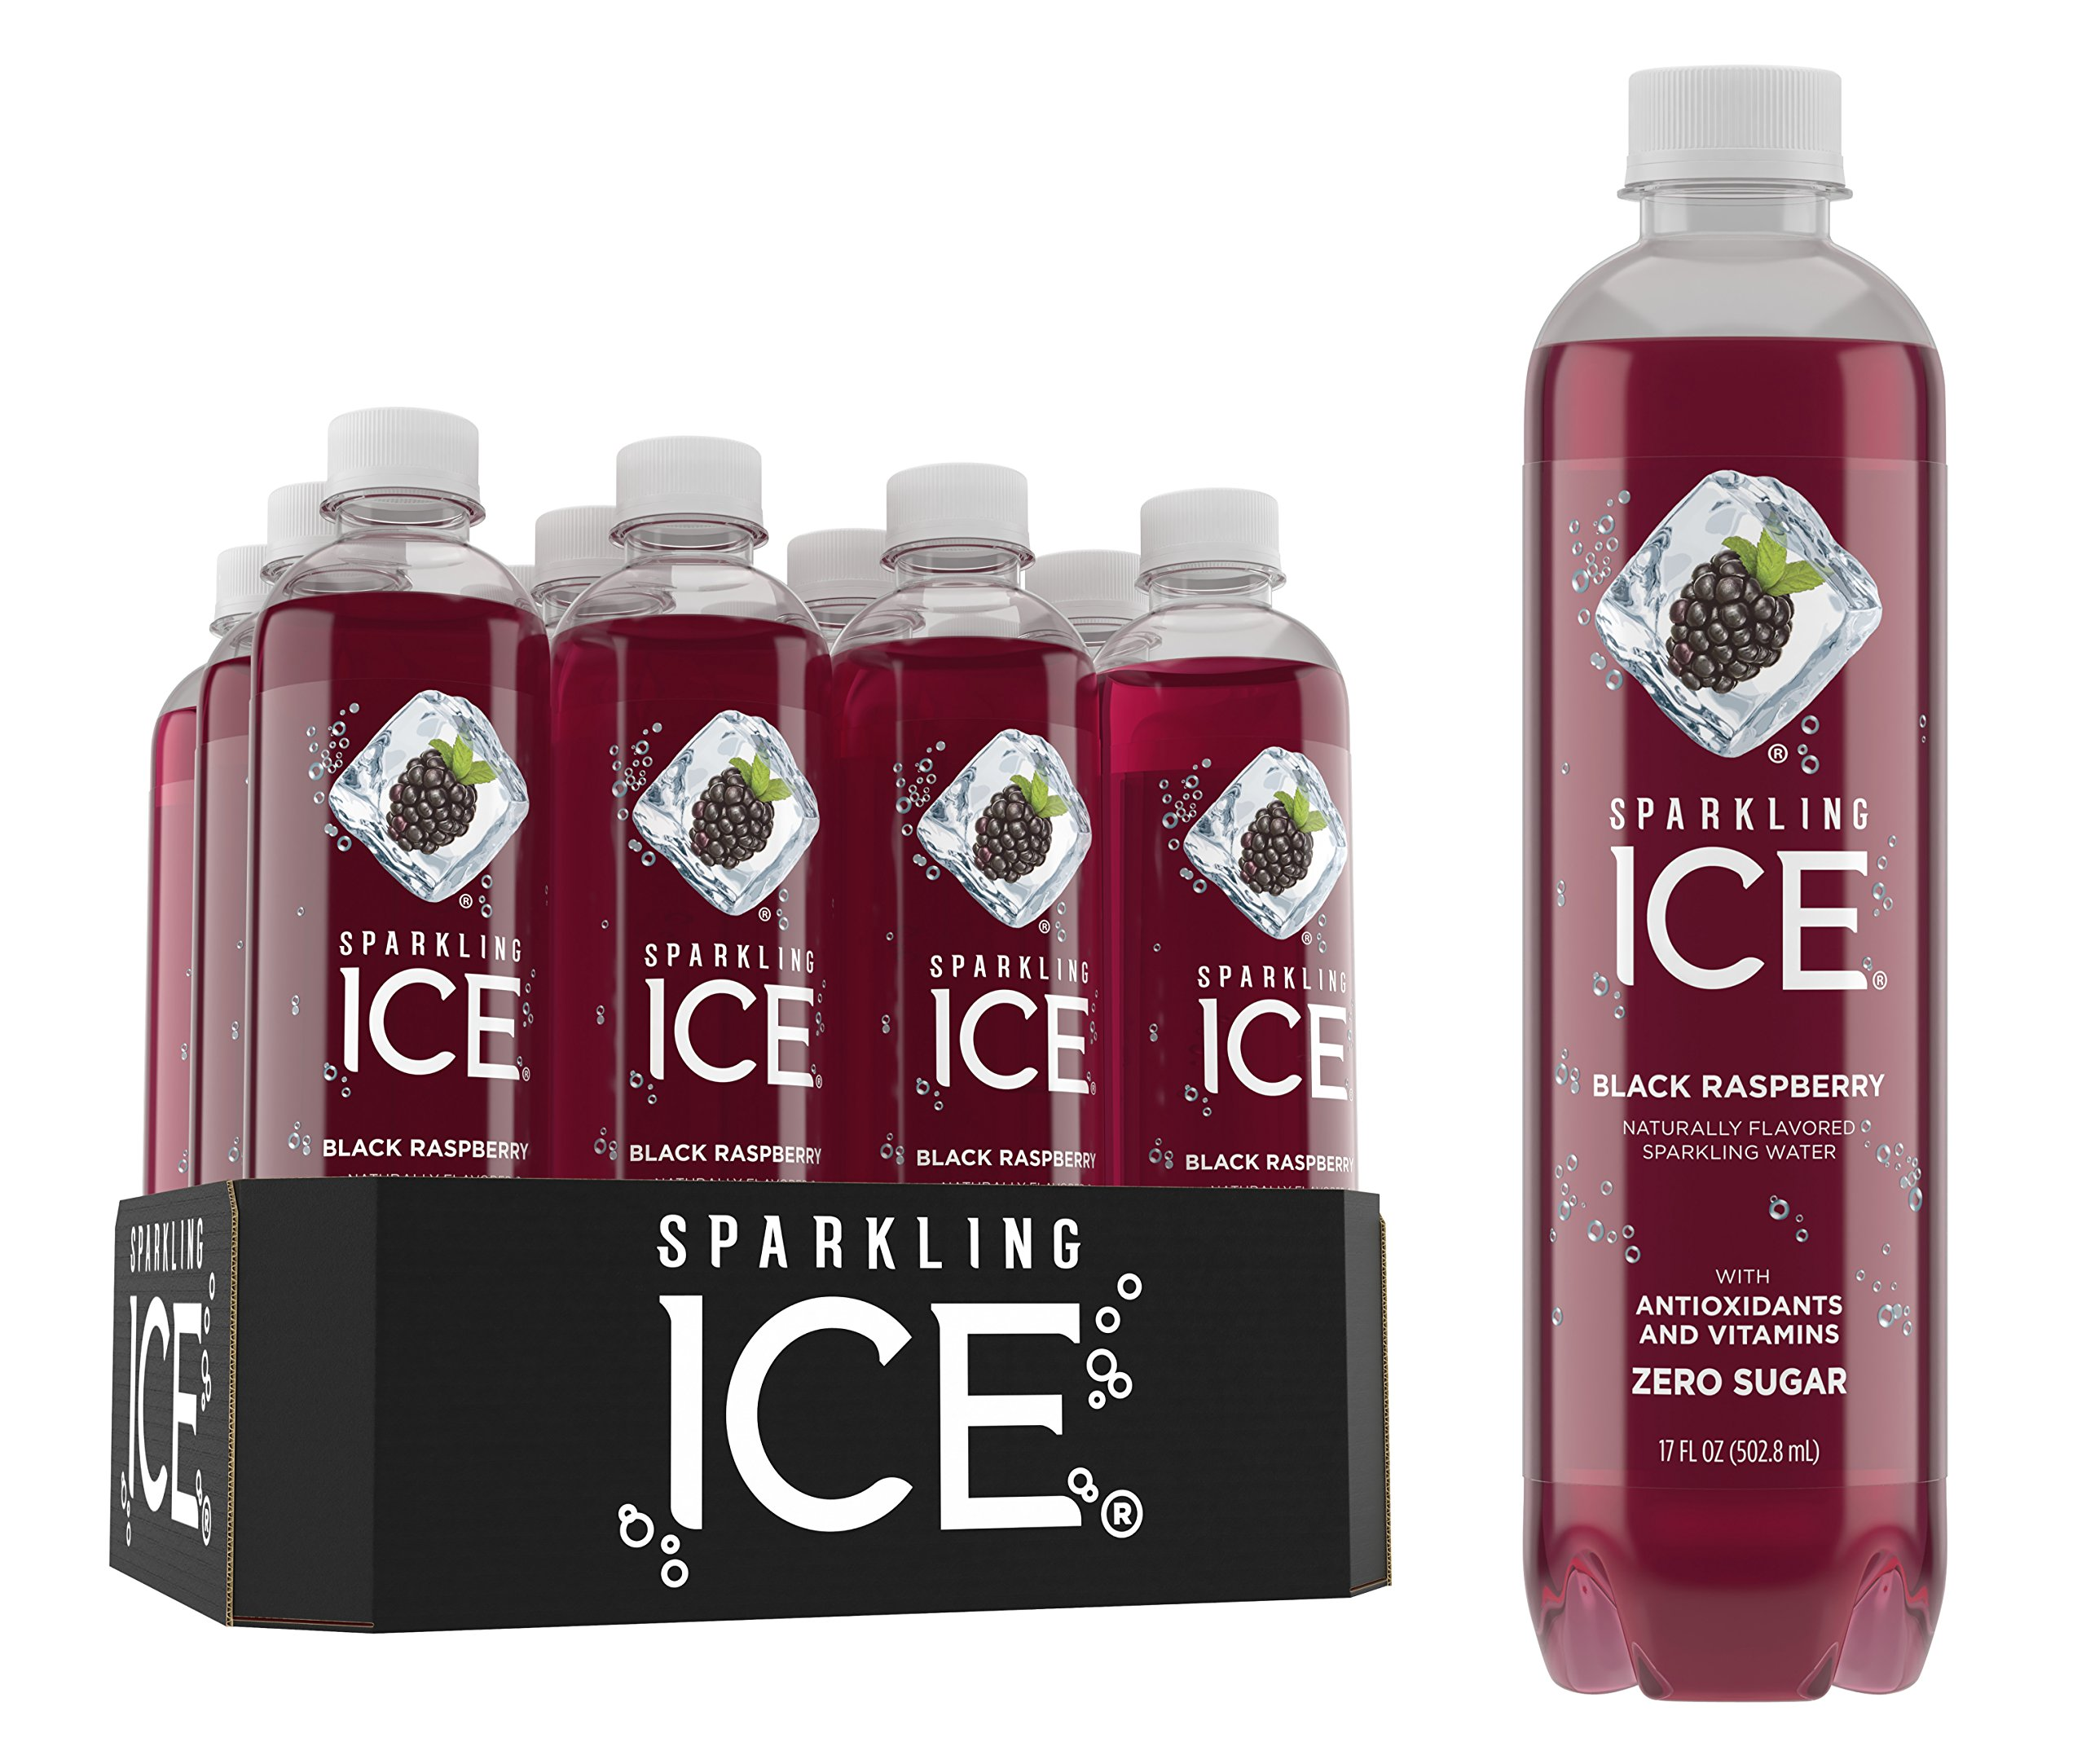 Sparkling Ice Black Raspberry Sparkling Water, with Antioxidants and Vitamins, Zero Sugar, 17 Ounce Bottles (Pack of 12)